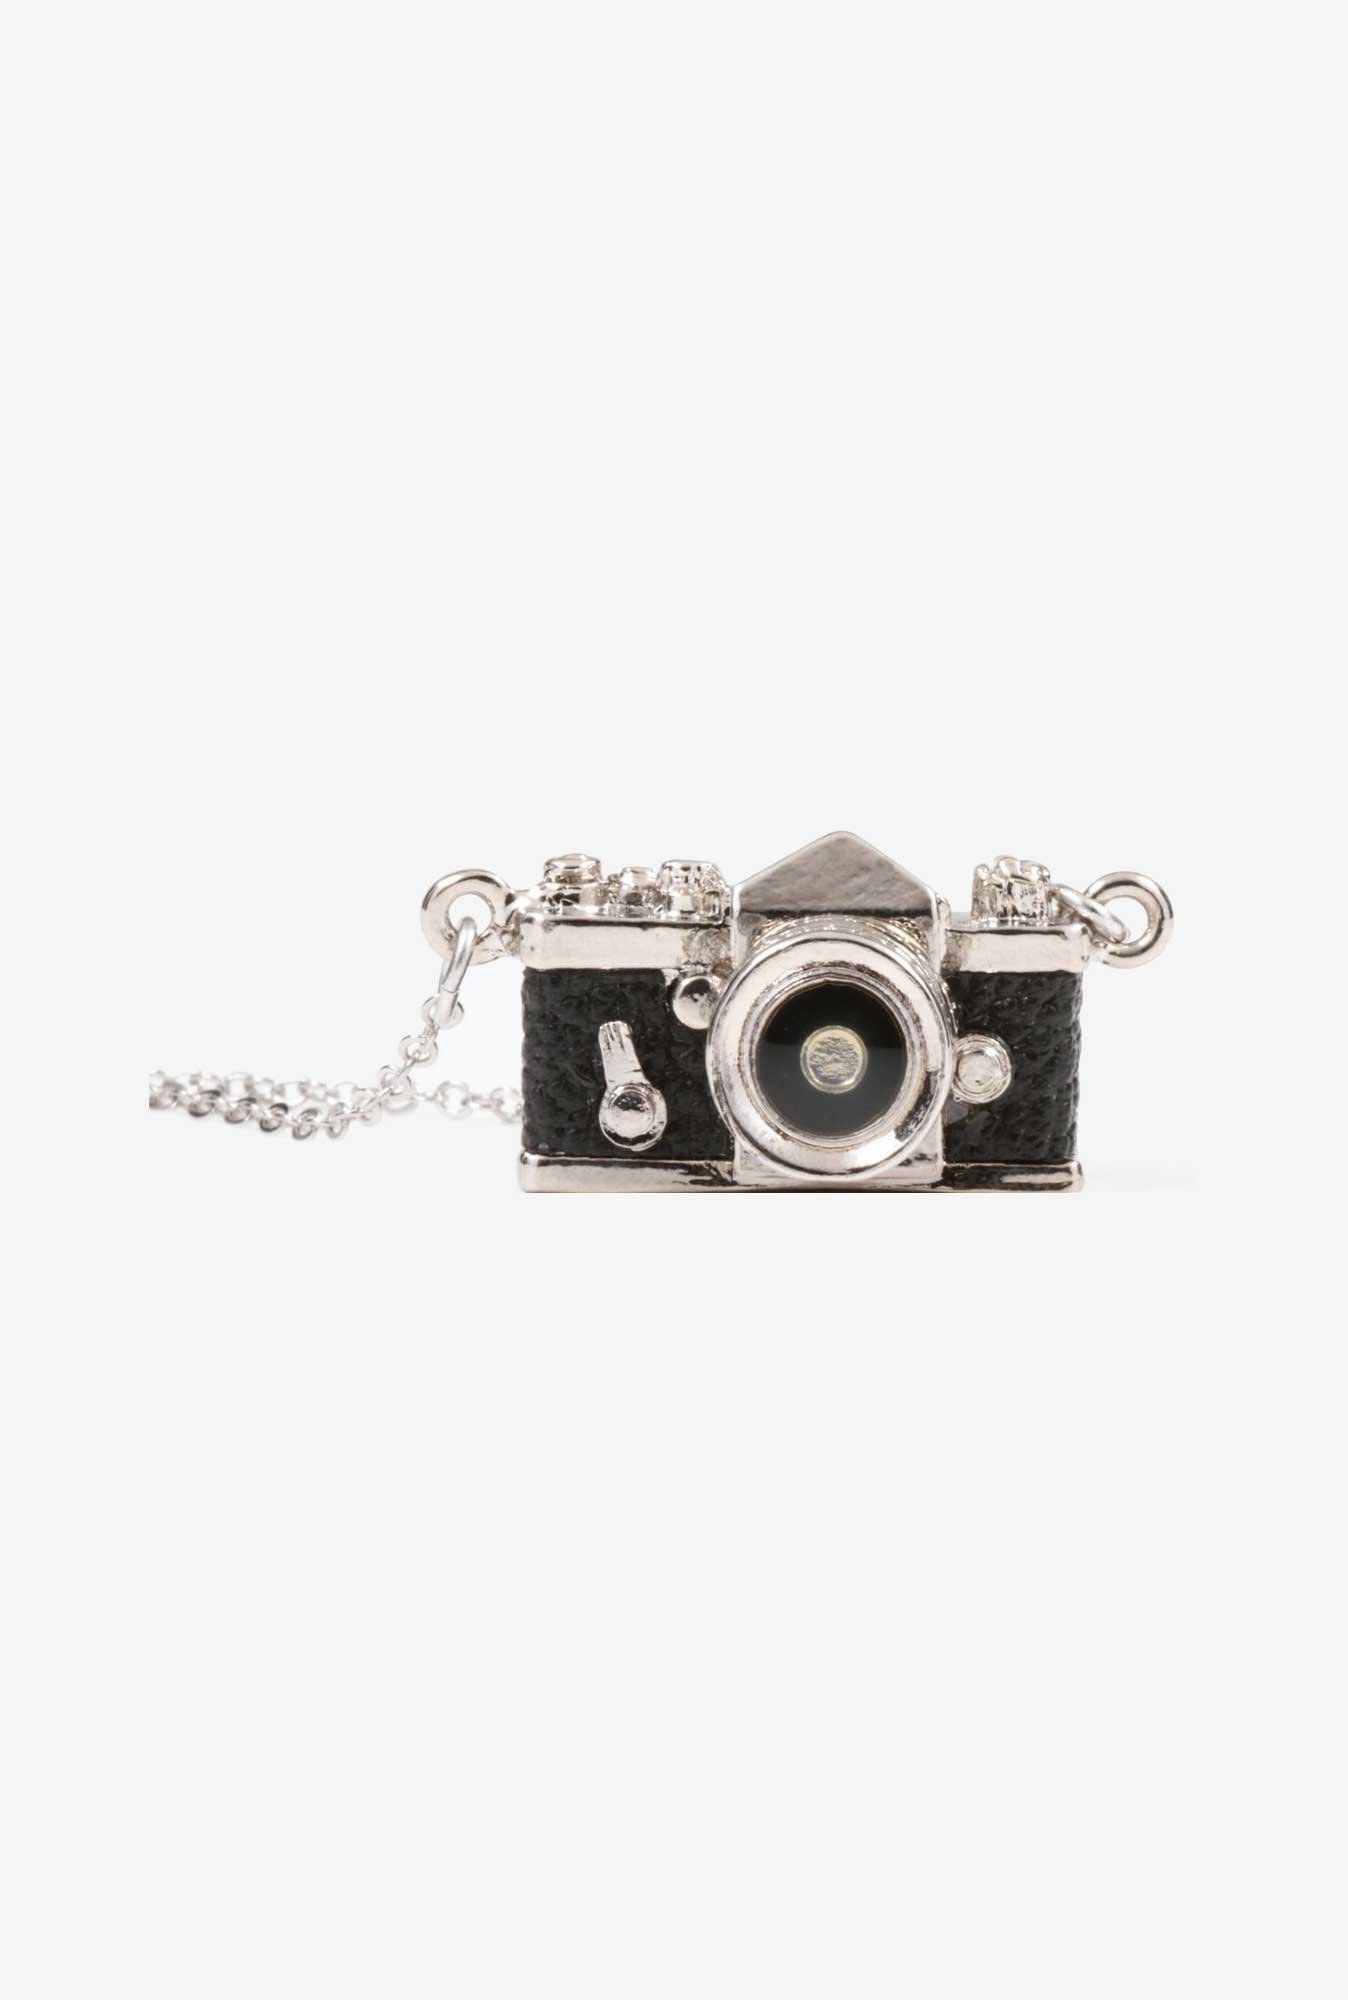 Japan hobby tool Miniature Camera Necklace SLR (Black)